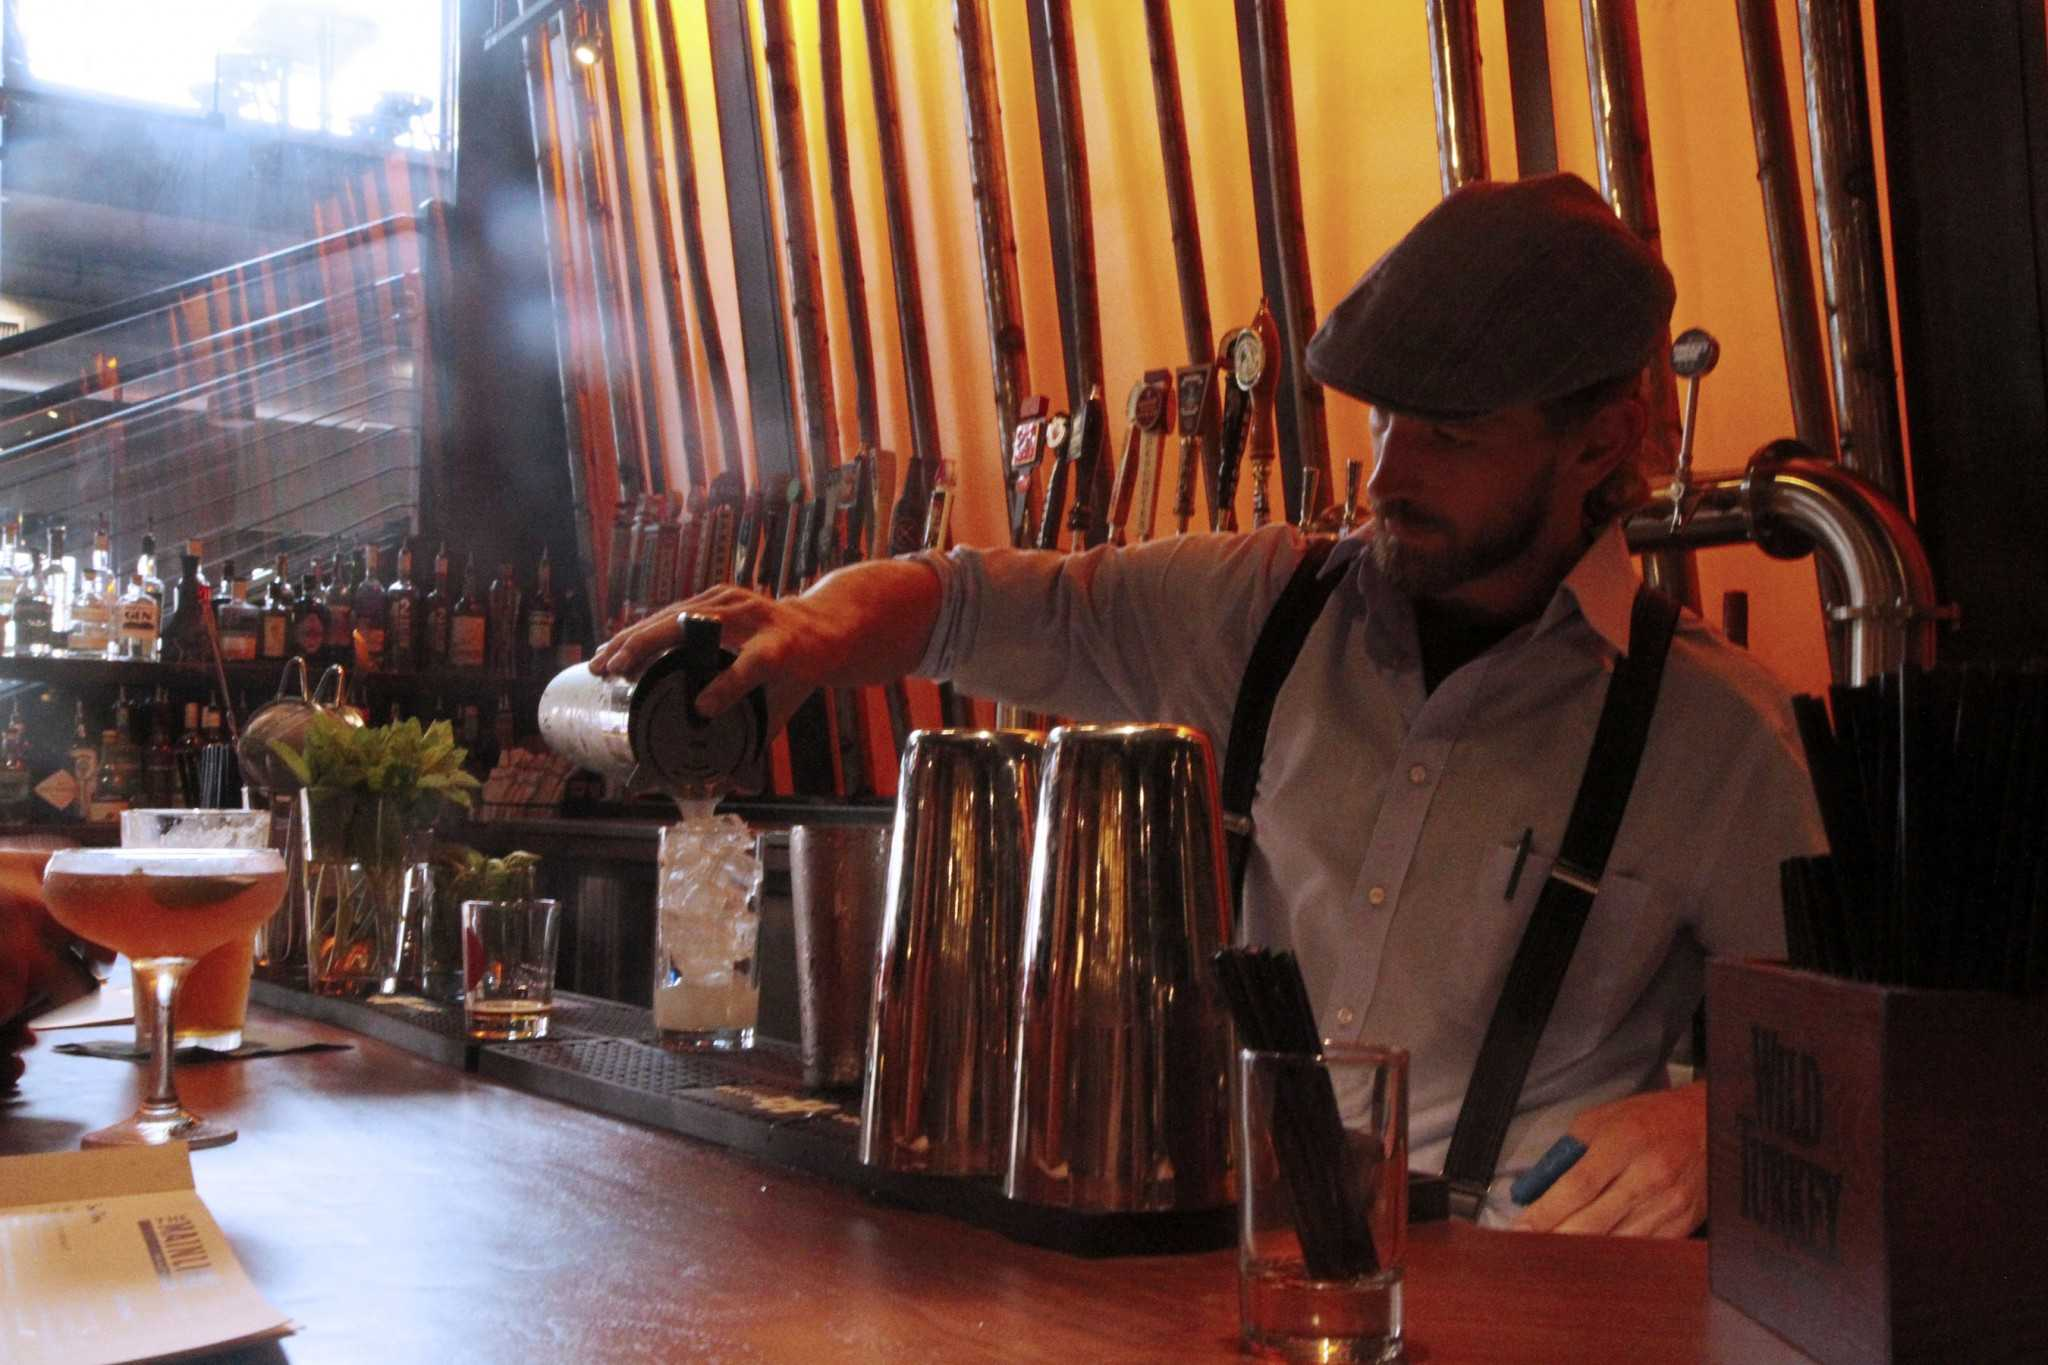 Mainline bartender pours drinks for afternoon customers. The Mainline staff is hospitable, friendly, and very welcoming to dinners.